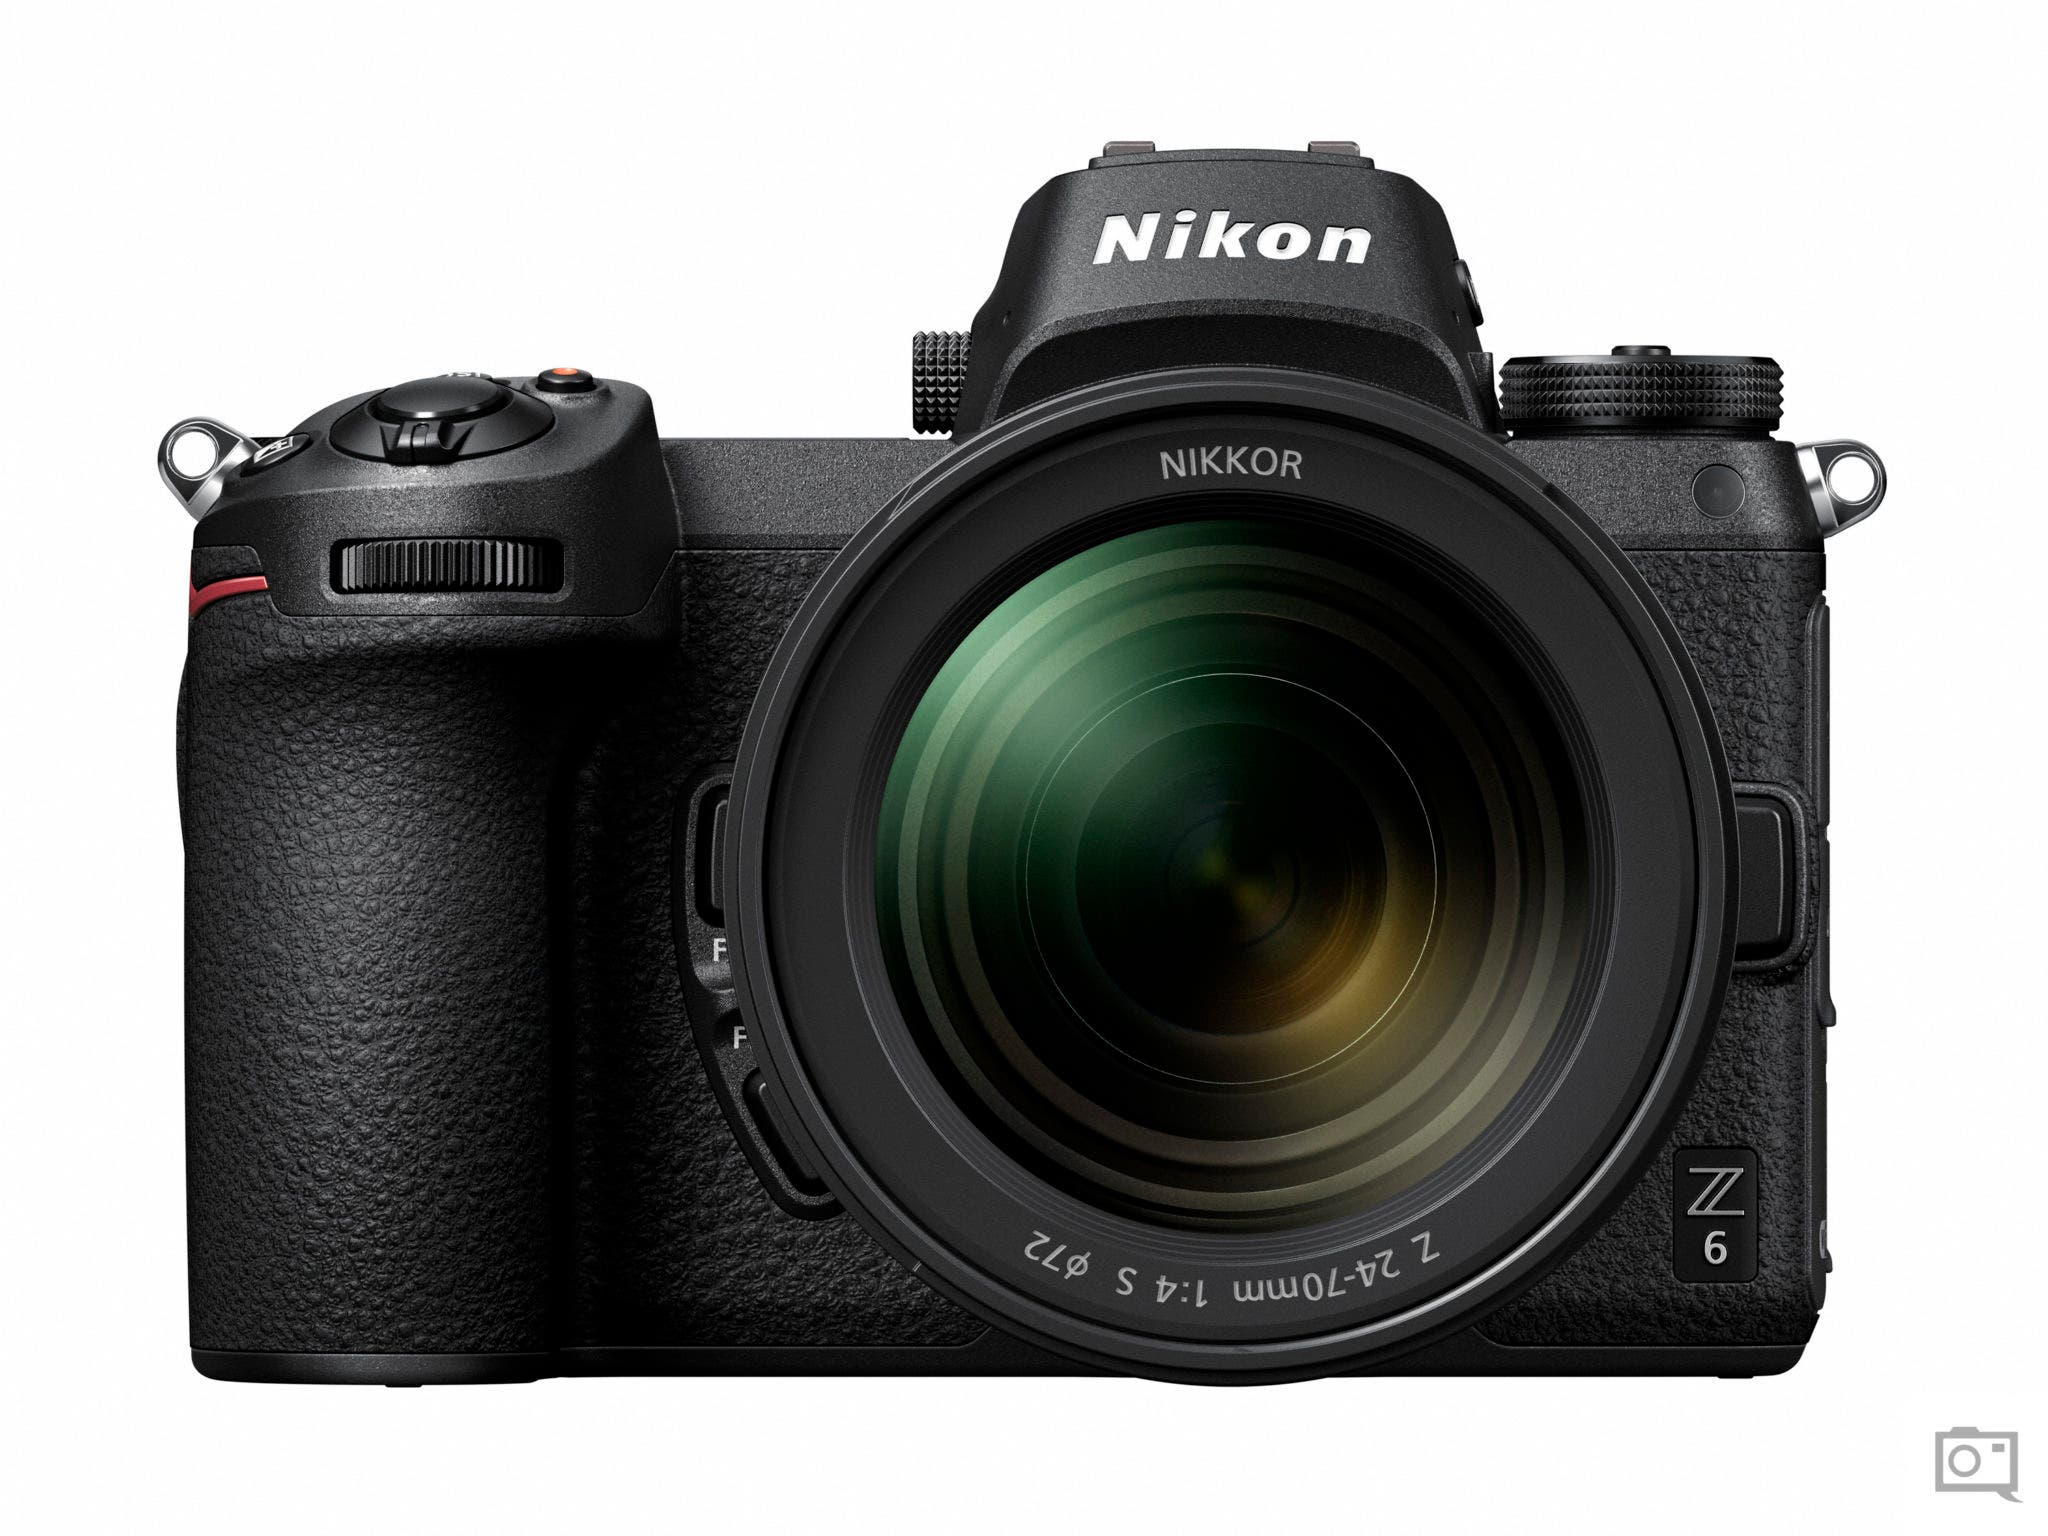 (ALL YOU NEED TO KNOW) The Nikon Z7 and Nikon Z6 Were Designed Specifically for Higher Grade Lenses